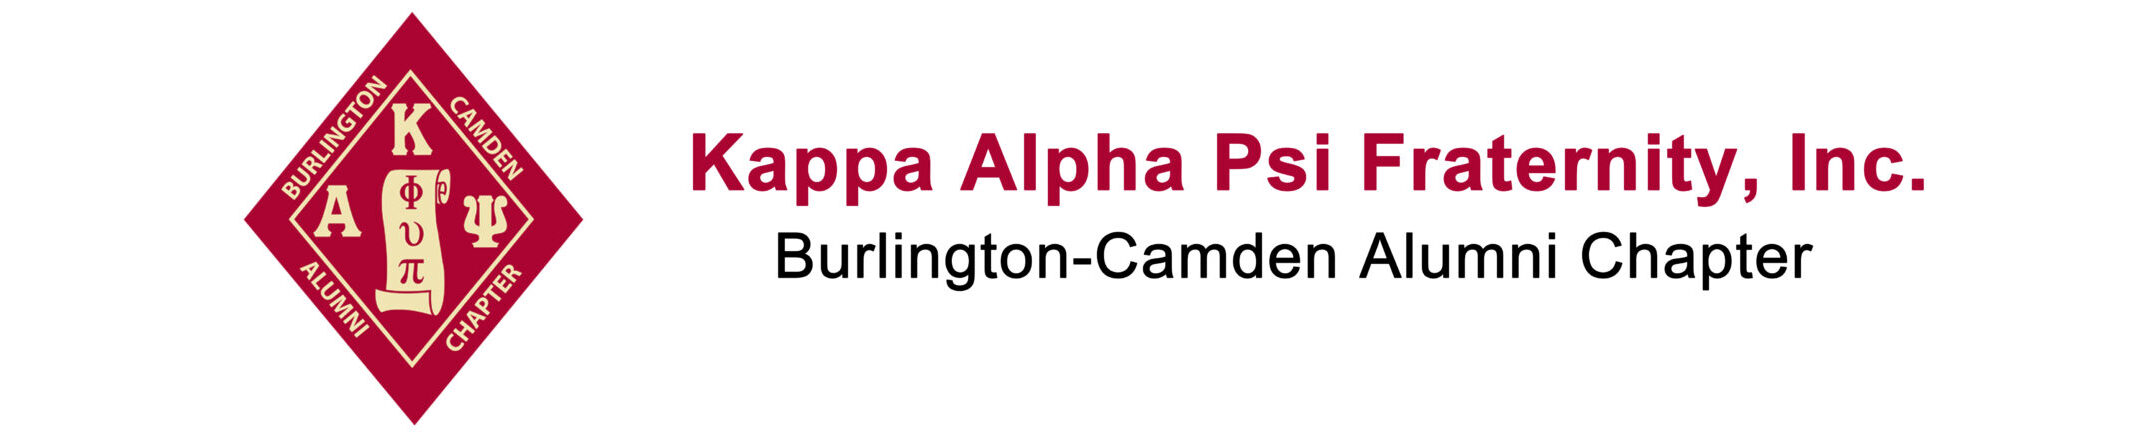 Kappa Alpha Psi Fraternity, Inc.